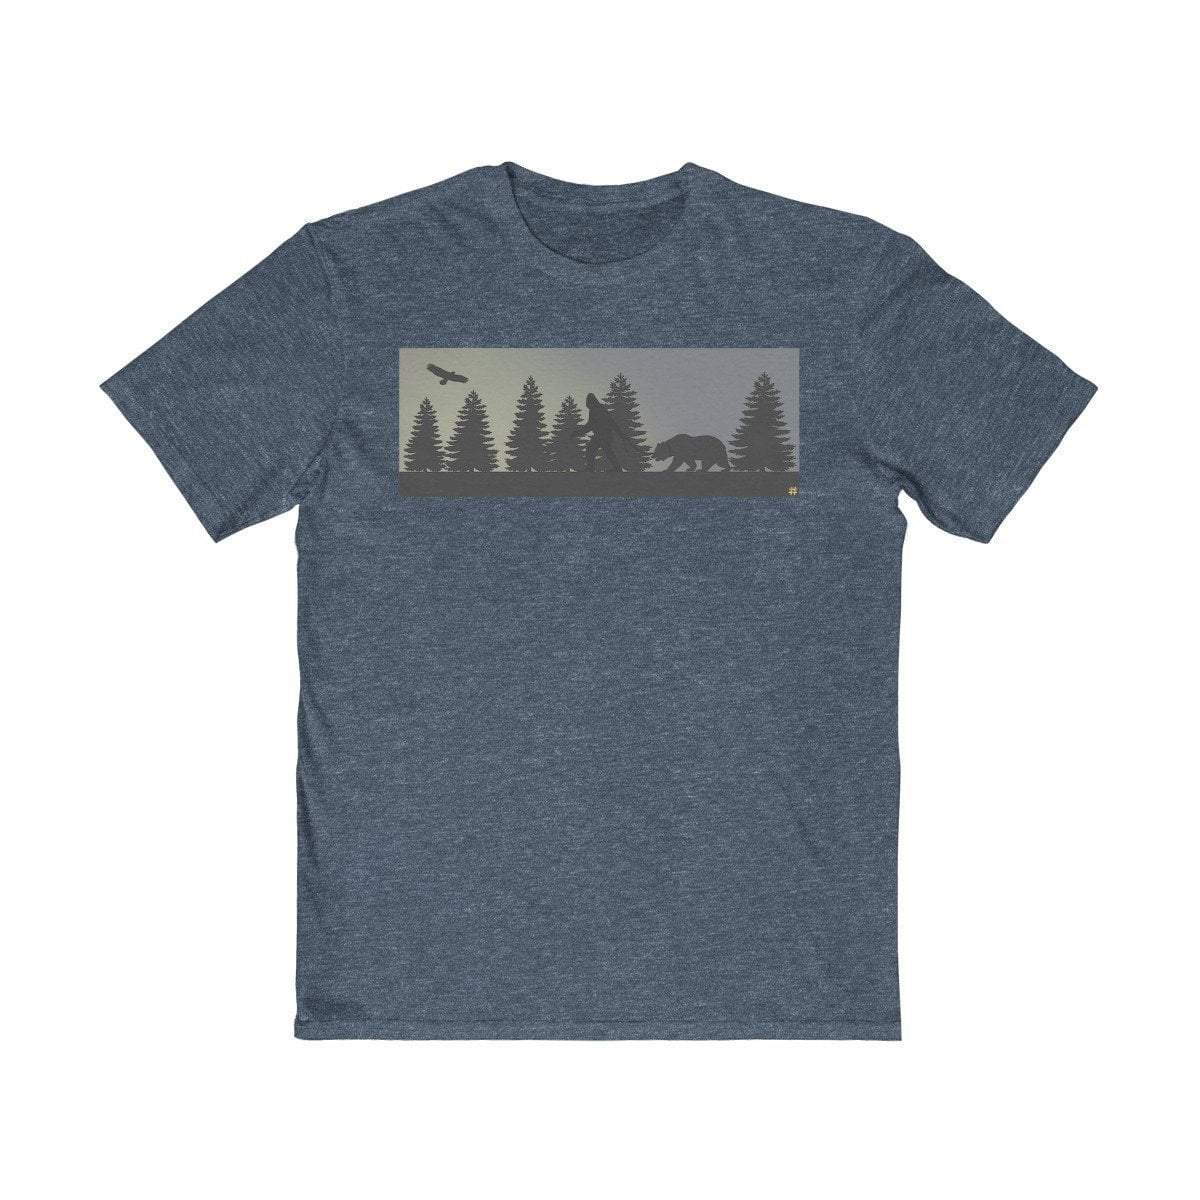 Plumskum Clothing > Men's Clothing > Shirts & Tees > T-shirts XS / Classic Red No Bigfoot DoesnT Have A I Saw Bigfoot Walking TShirt